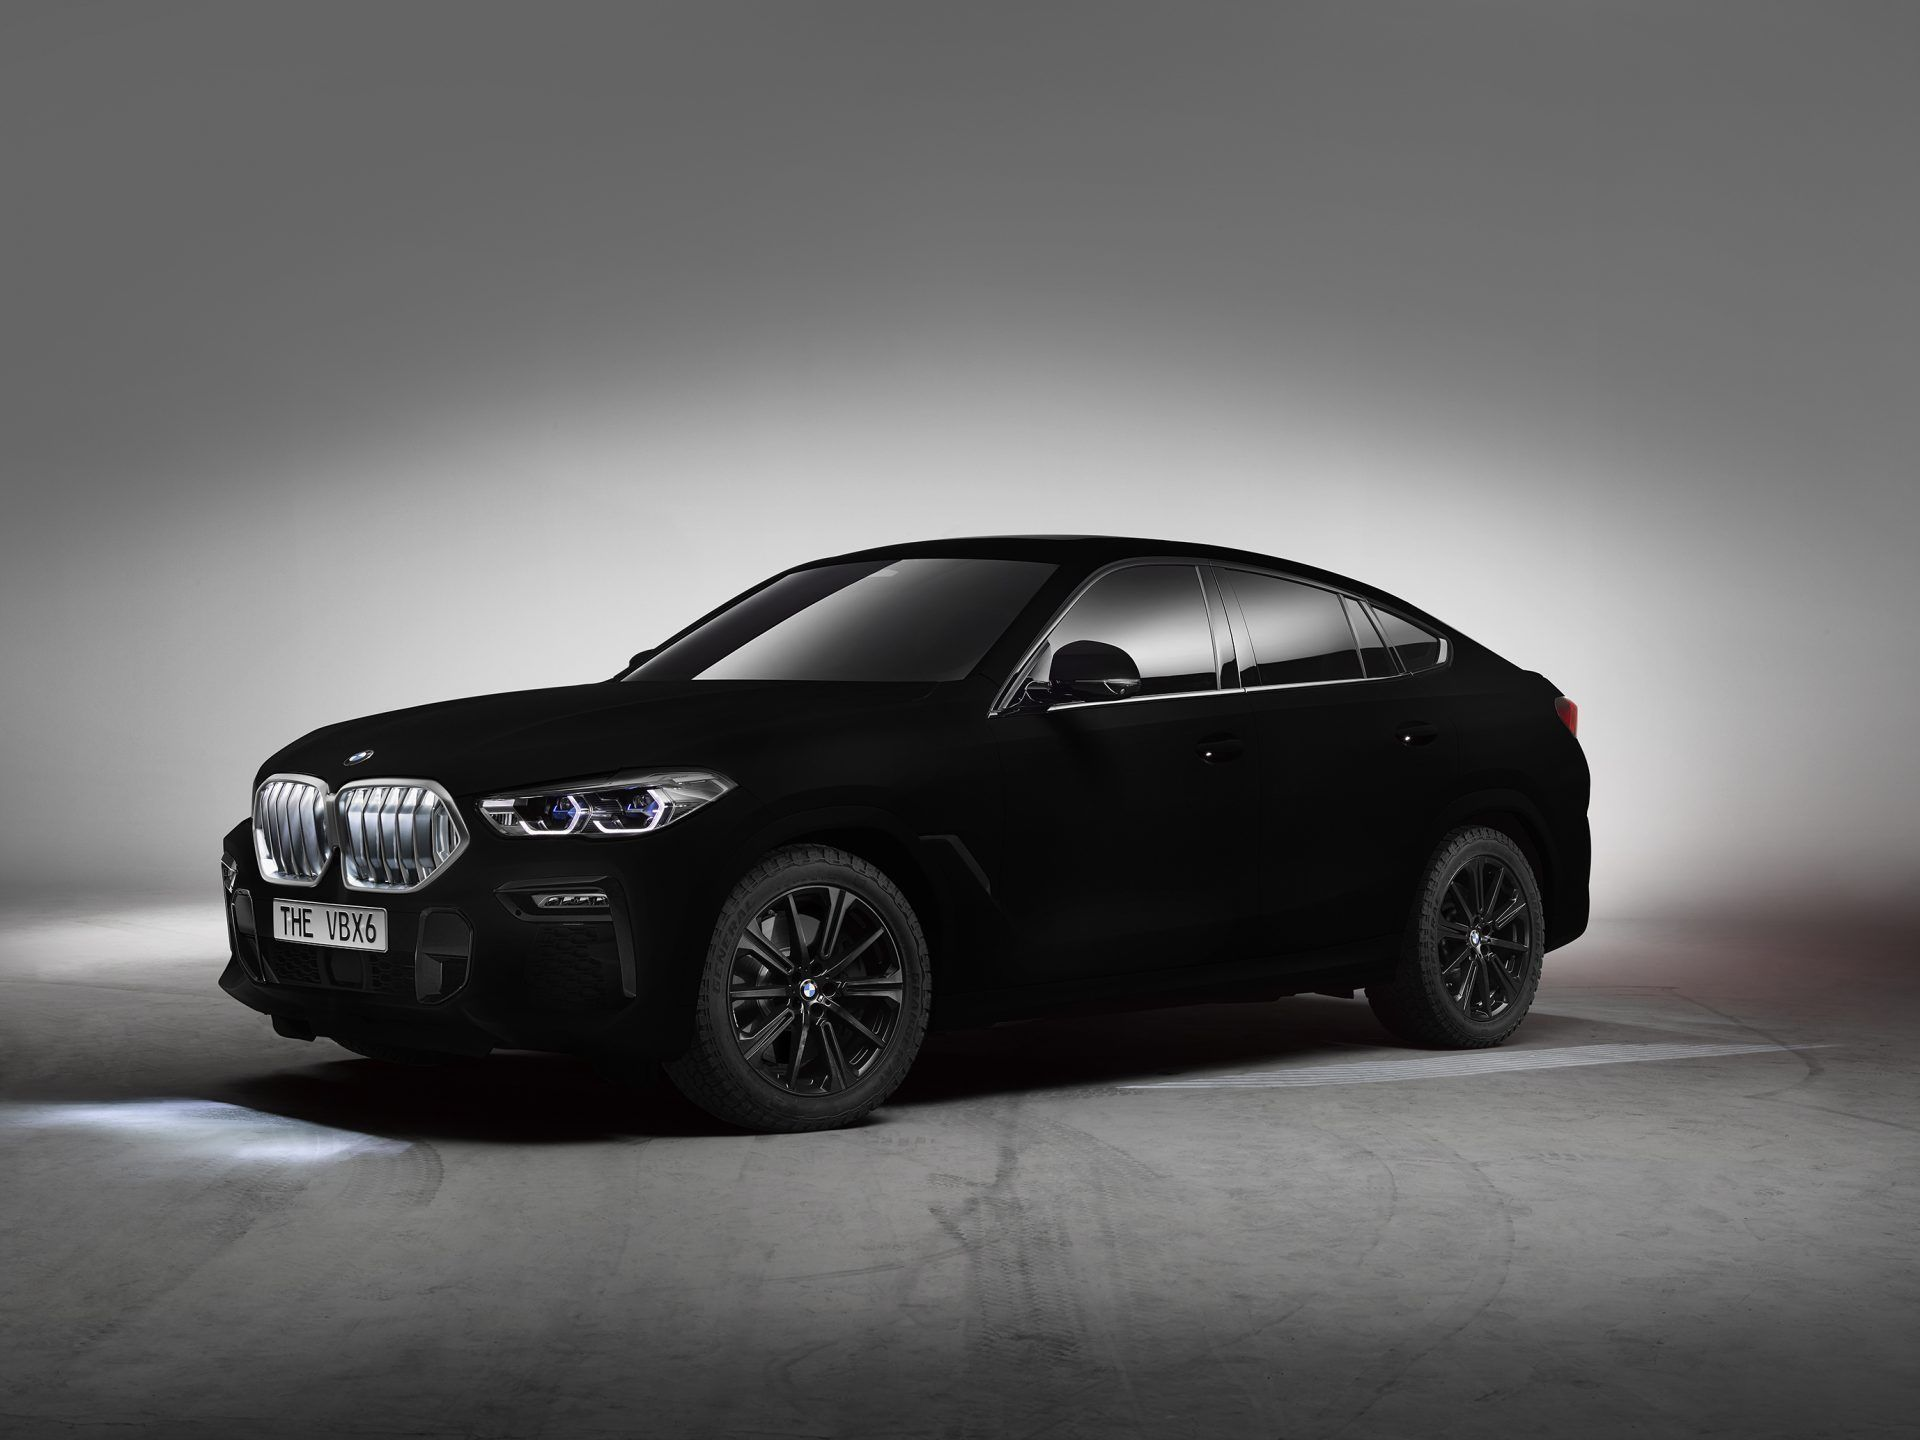 The 2020 Bmw X6 Gets A Vantablack Paint Job That Absorbs Light Bmw X6 Bmw Suv Bmw